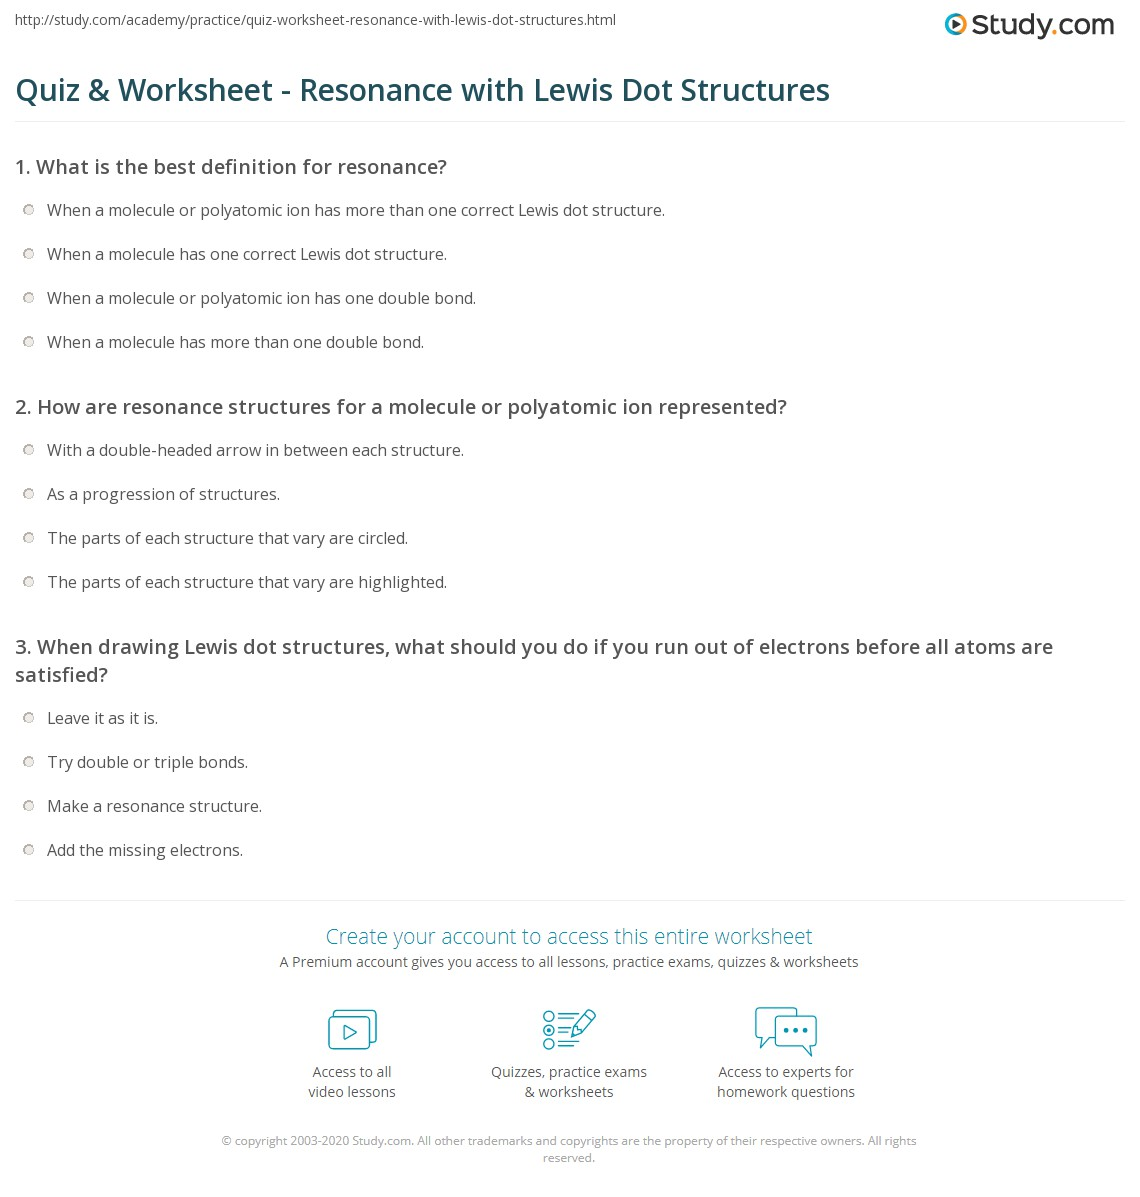 Quiz worksheet resonance with lewis dot structures study print lewis dot structures resonance worksheet pooptronica Choice Image